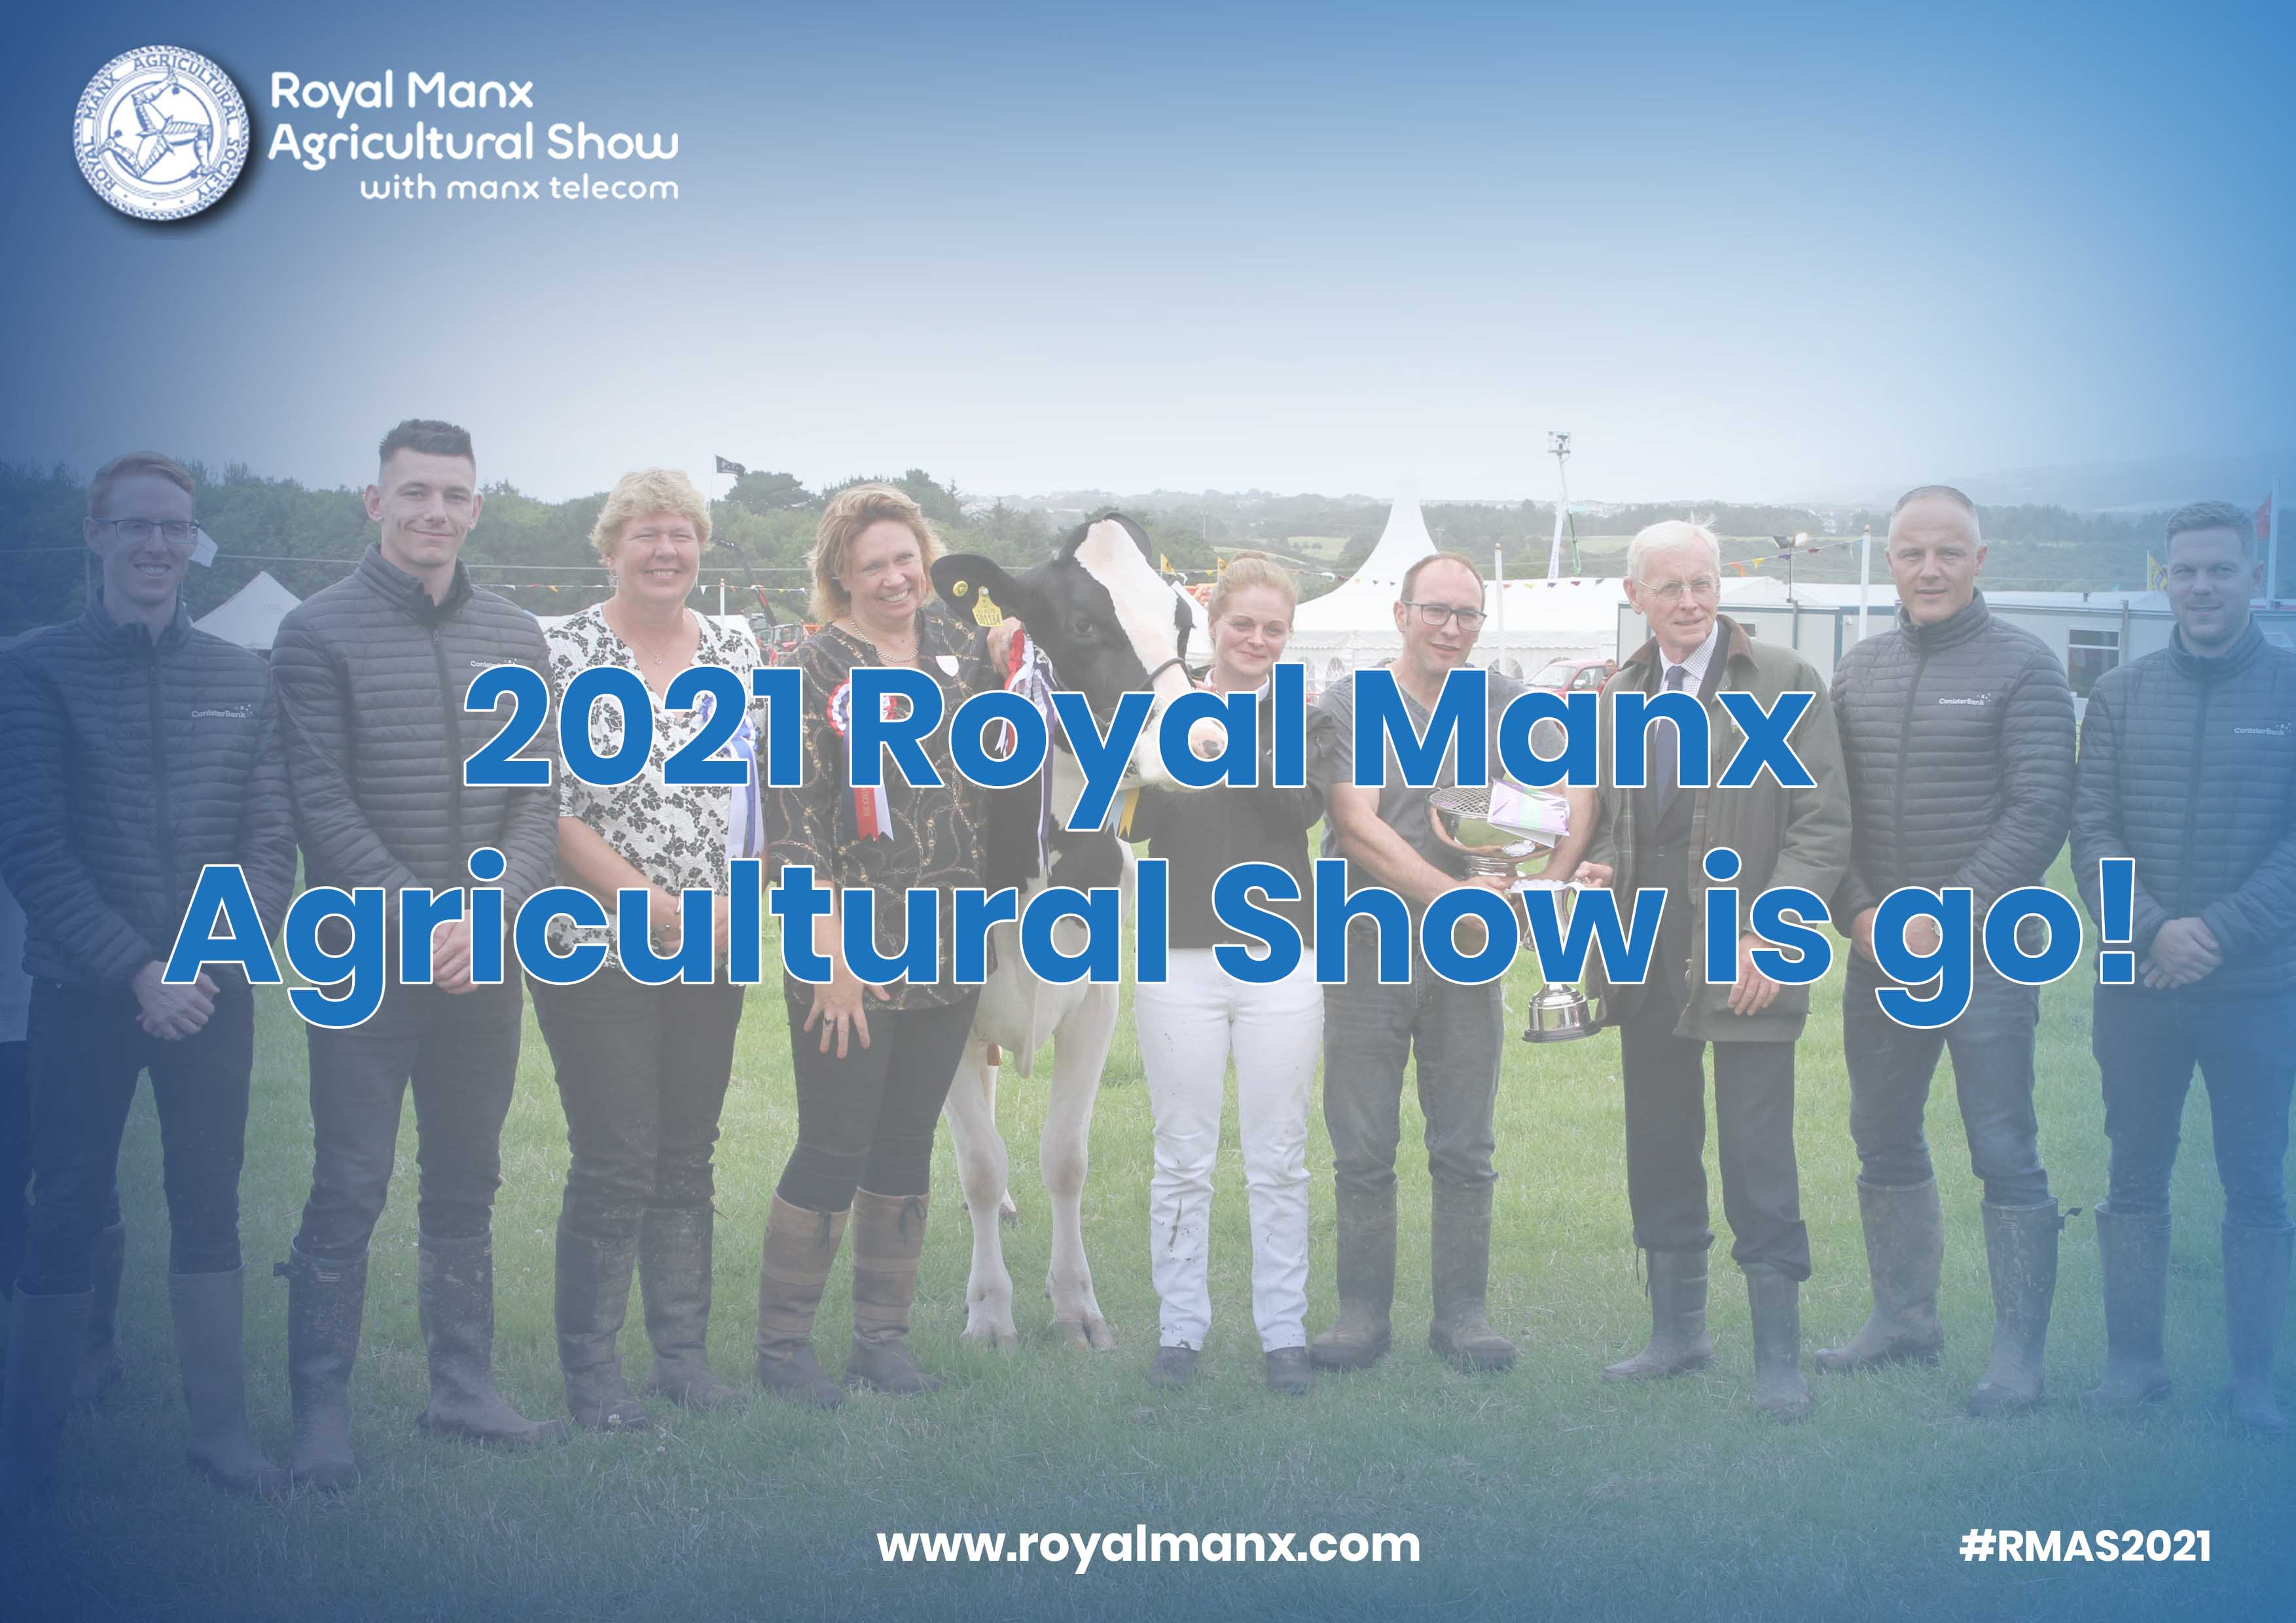 2021 Royal Manx Agricultural Show is go!